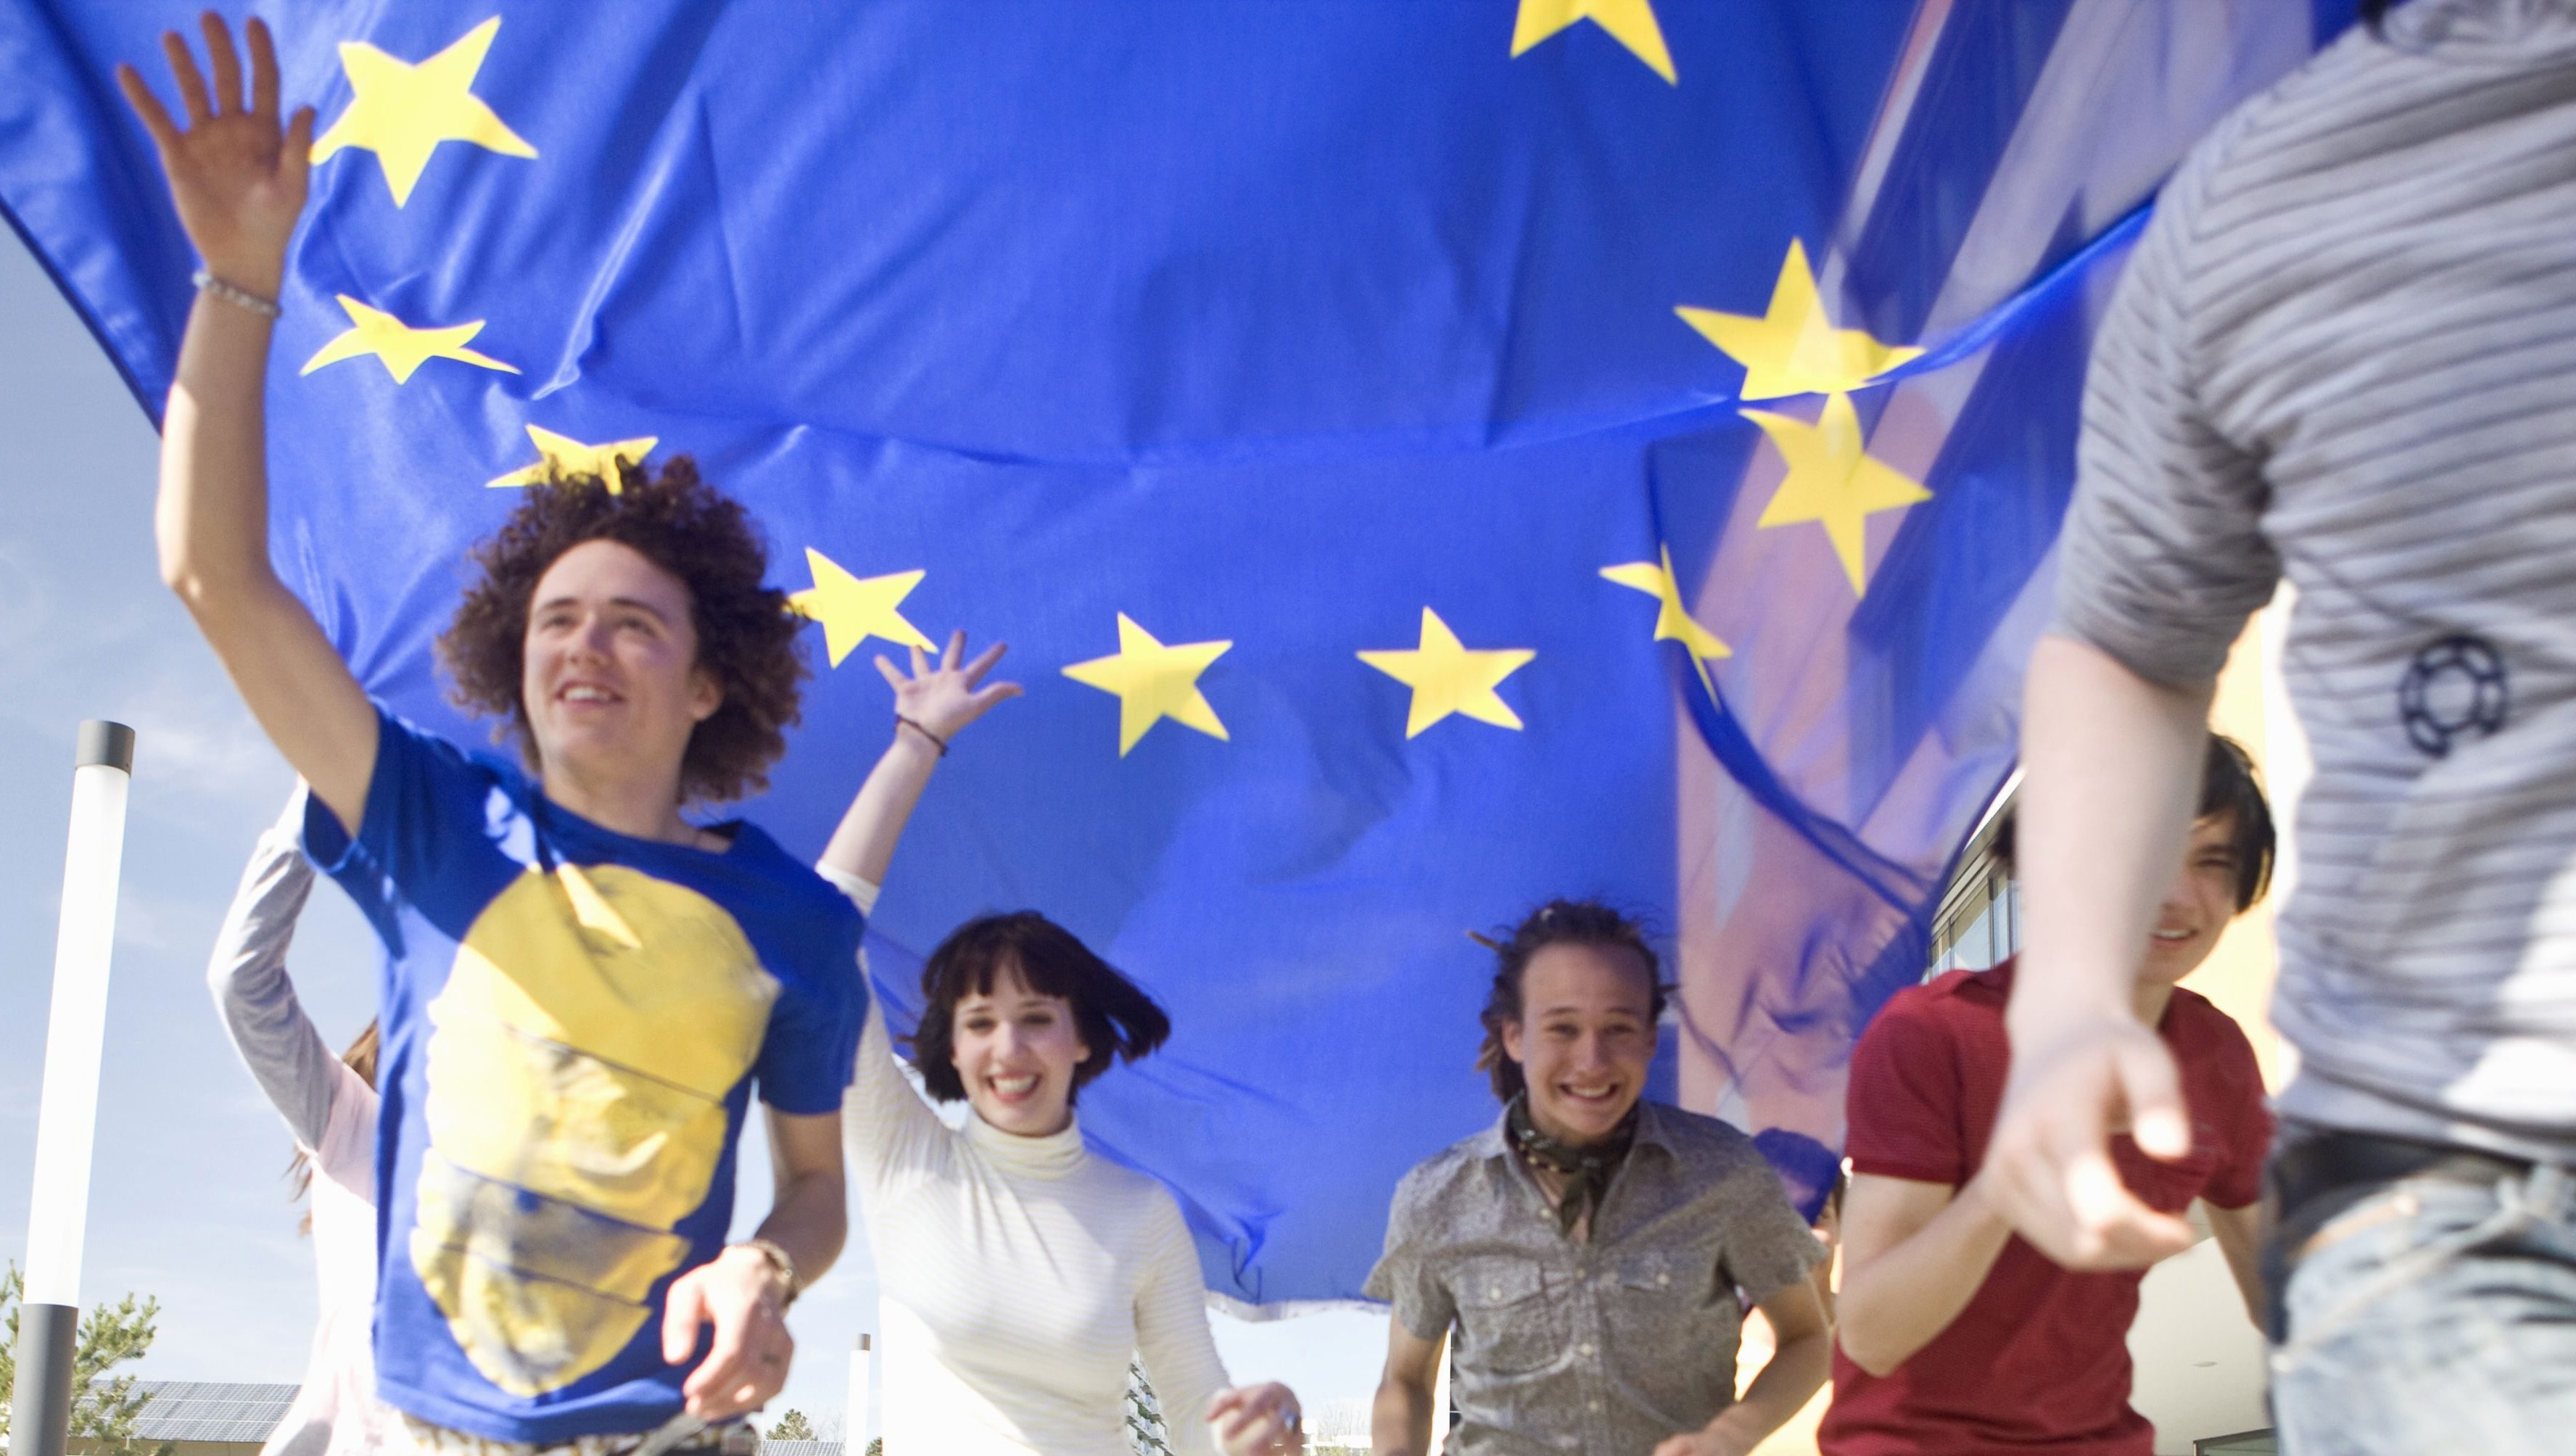 Union of Kingston Students will work to protect EU students from the effects of Brexit